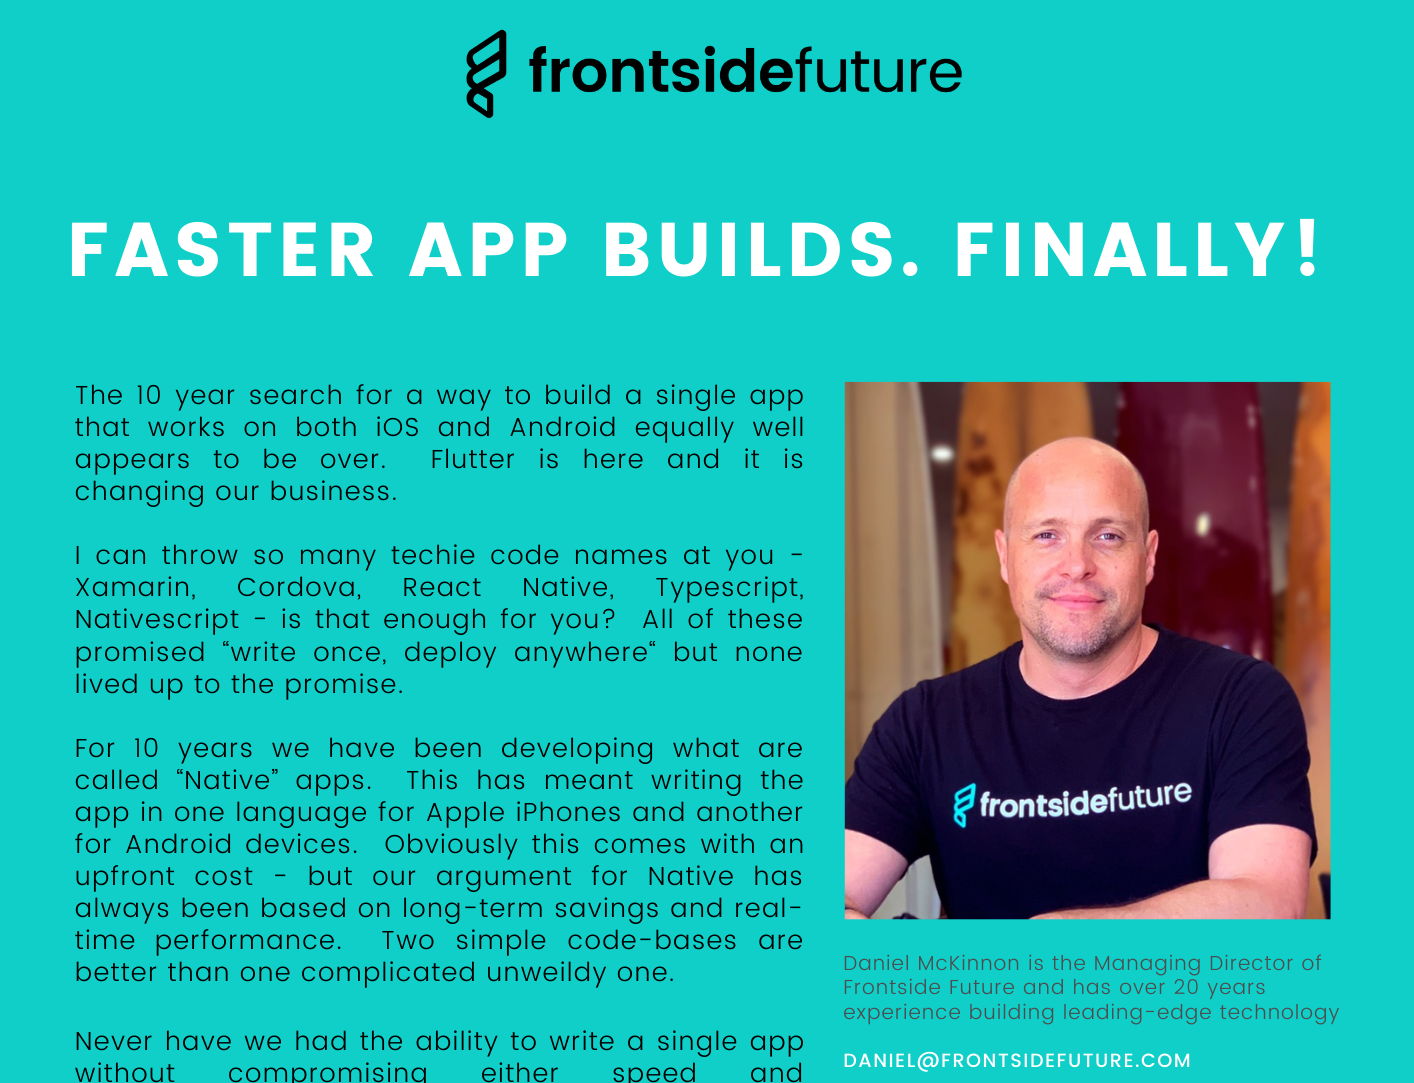 Faster app builds